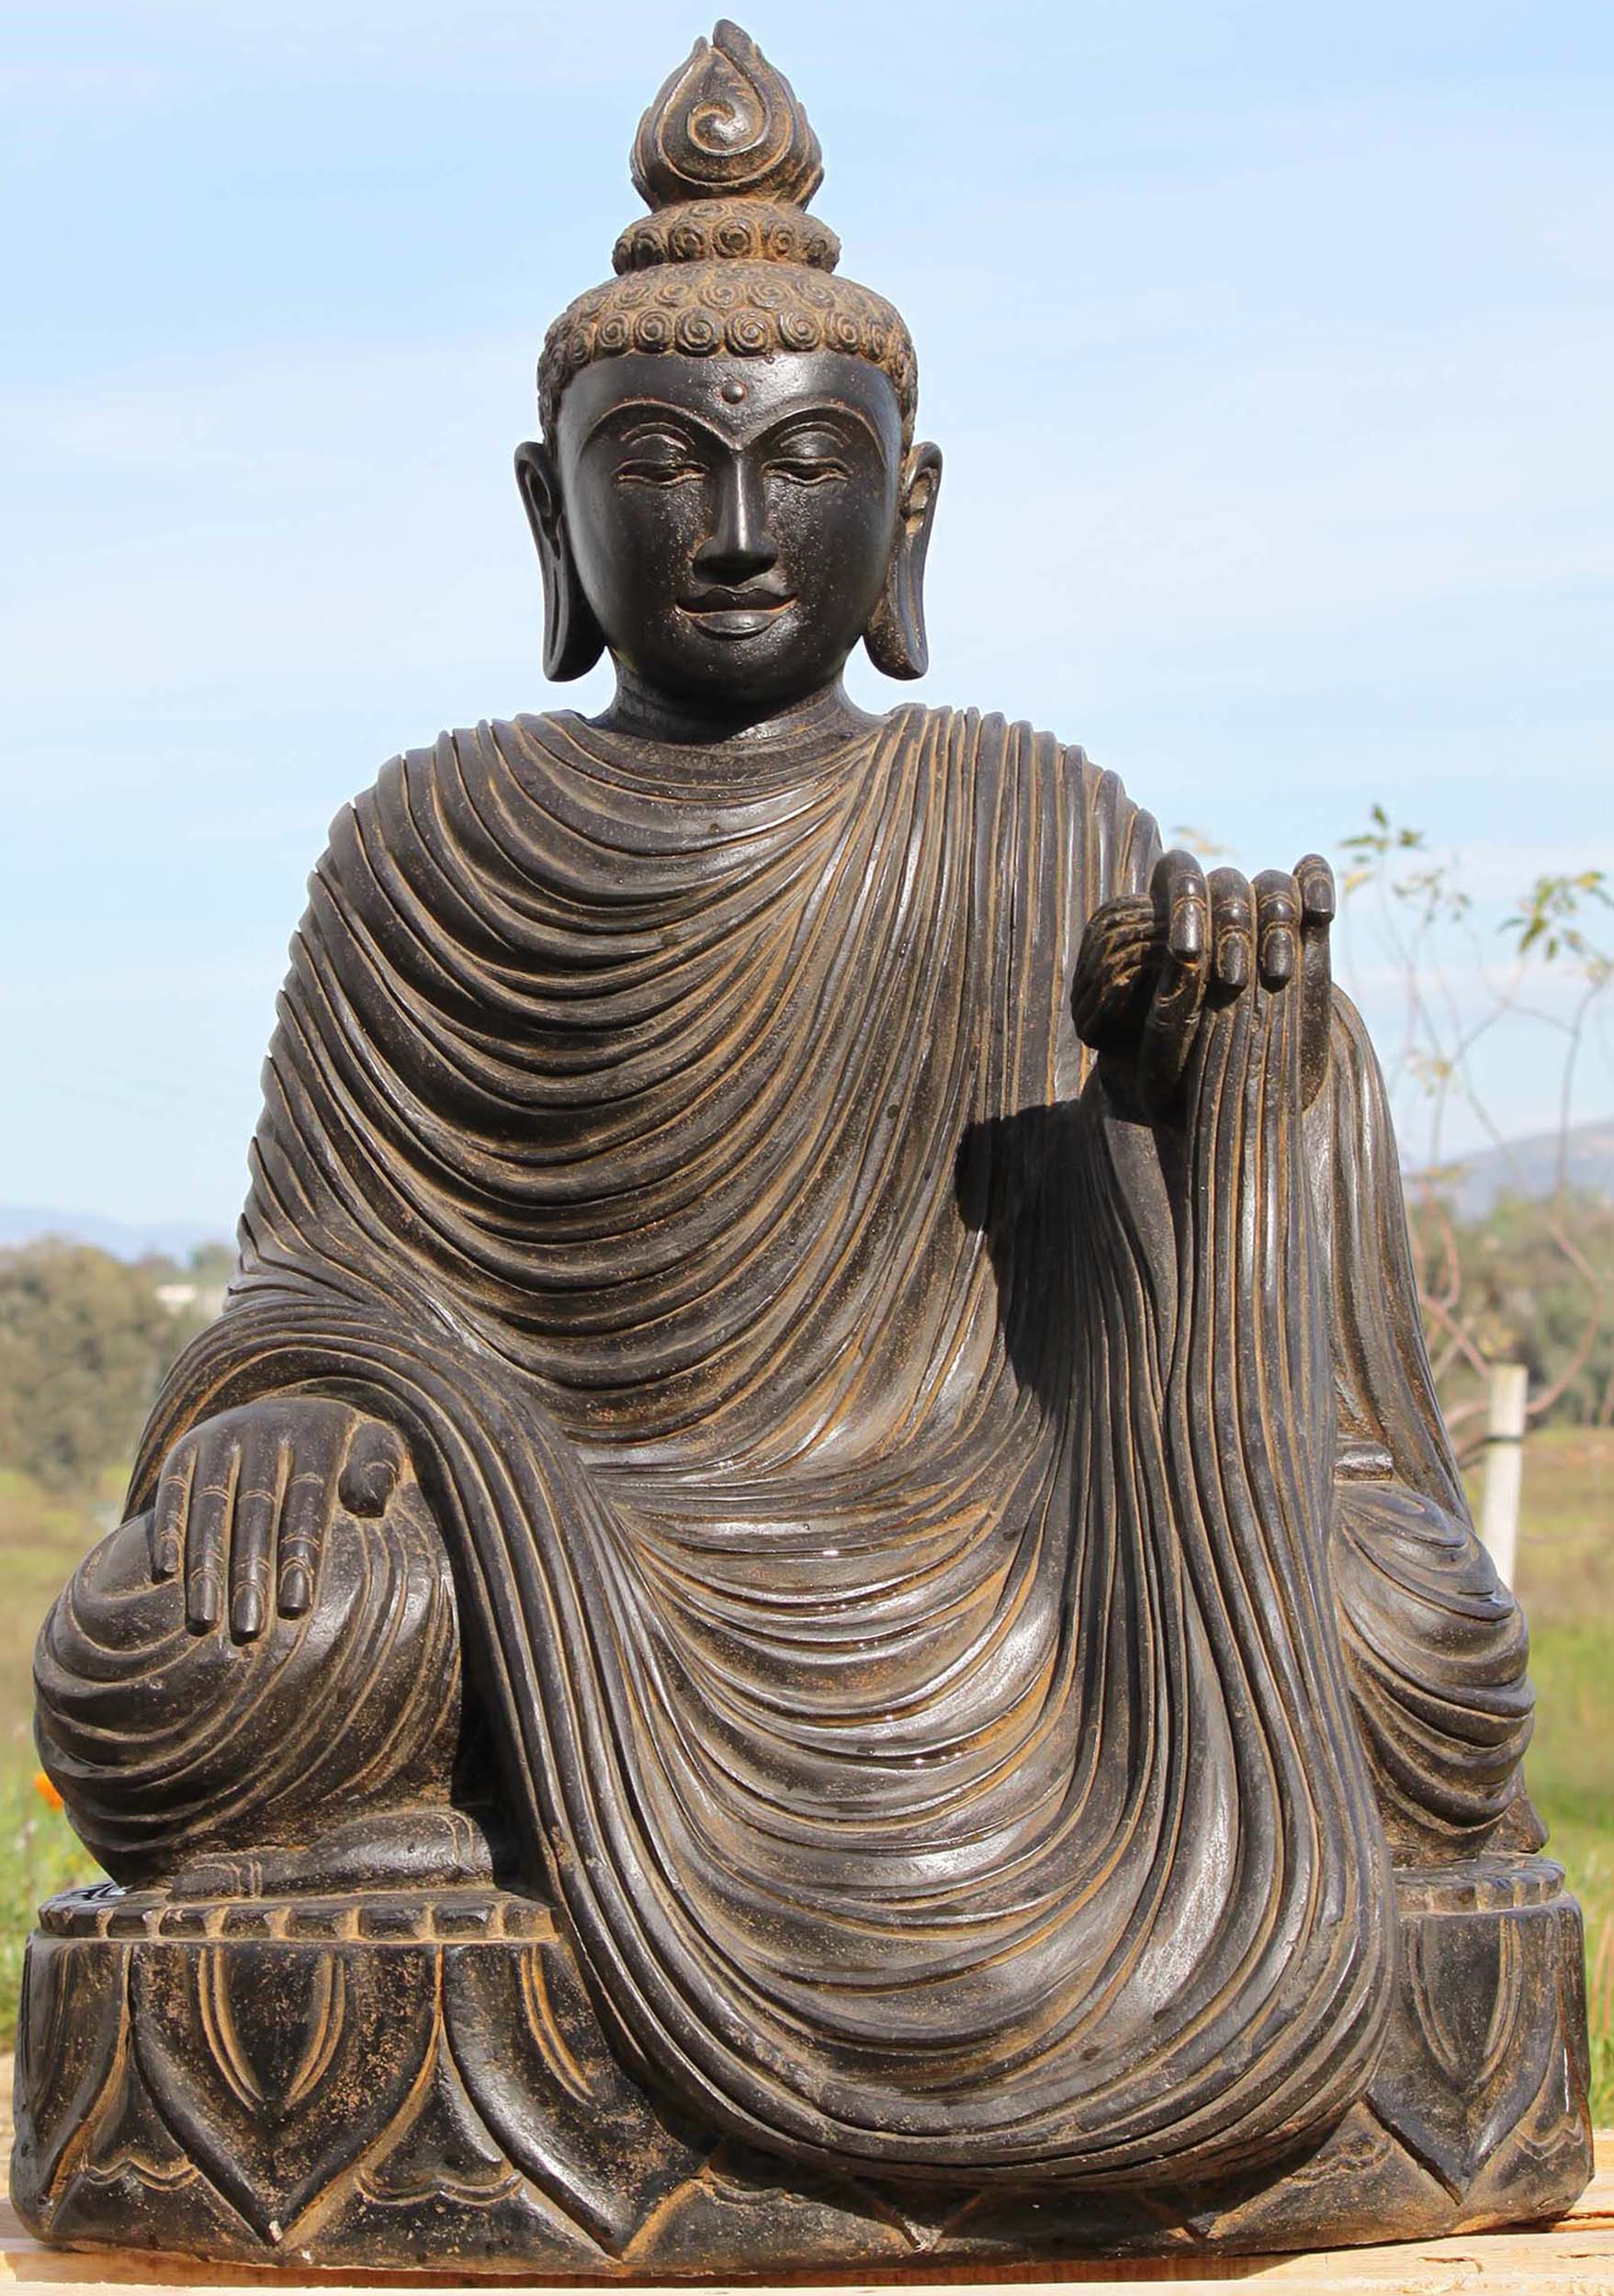 Stone garden buddha with flowing robes 39 97ls295 hindu gods stone garden buddha with flowing robes 39 workwithnaturefo